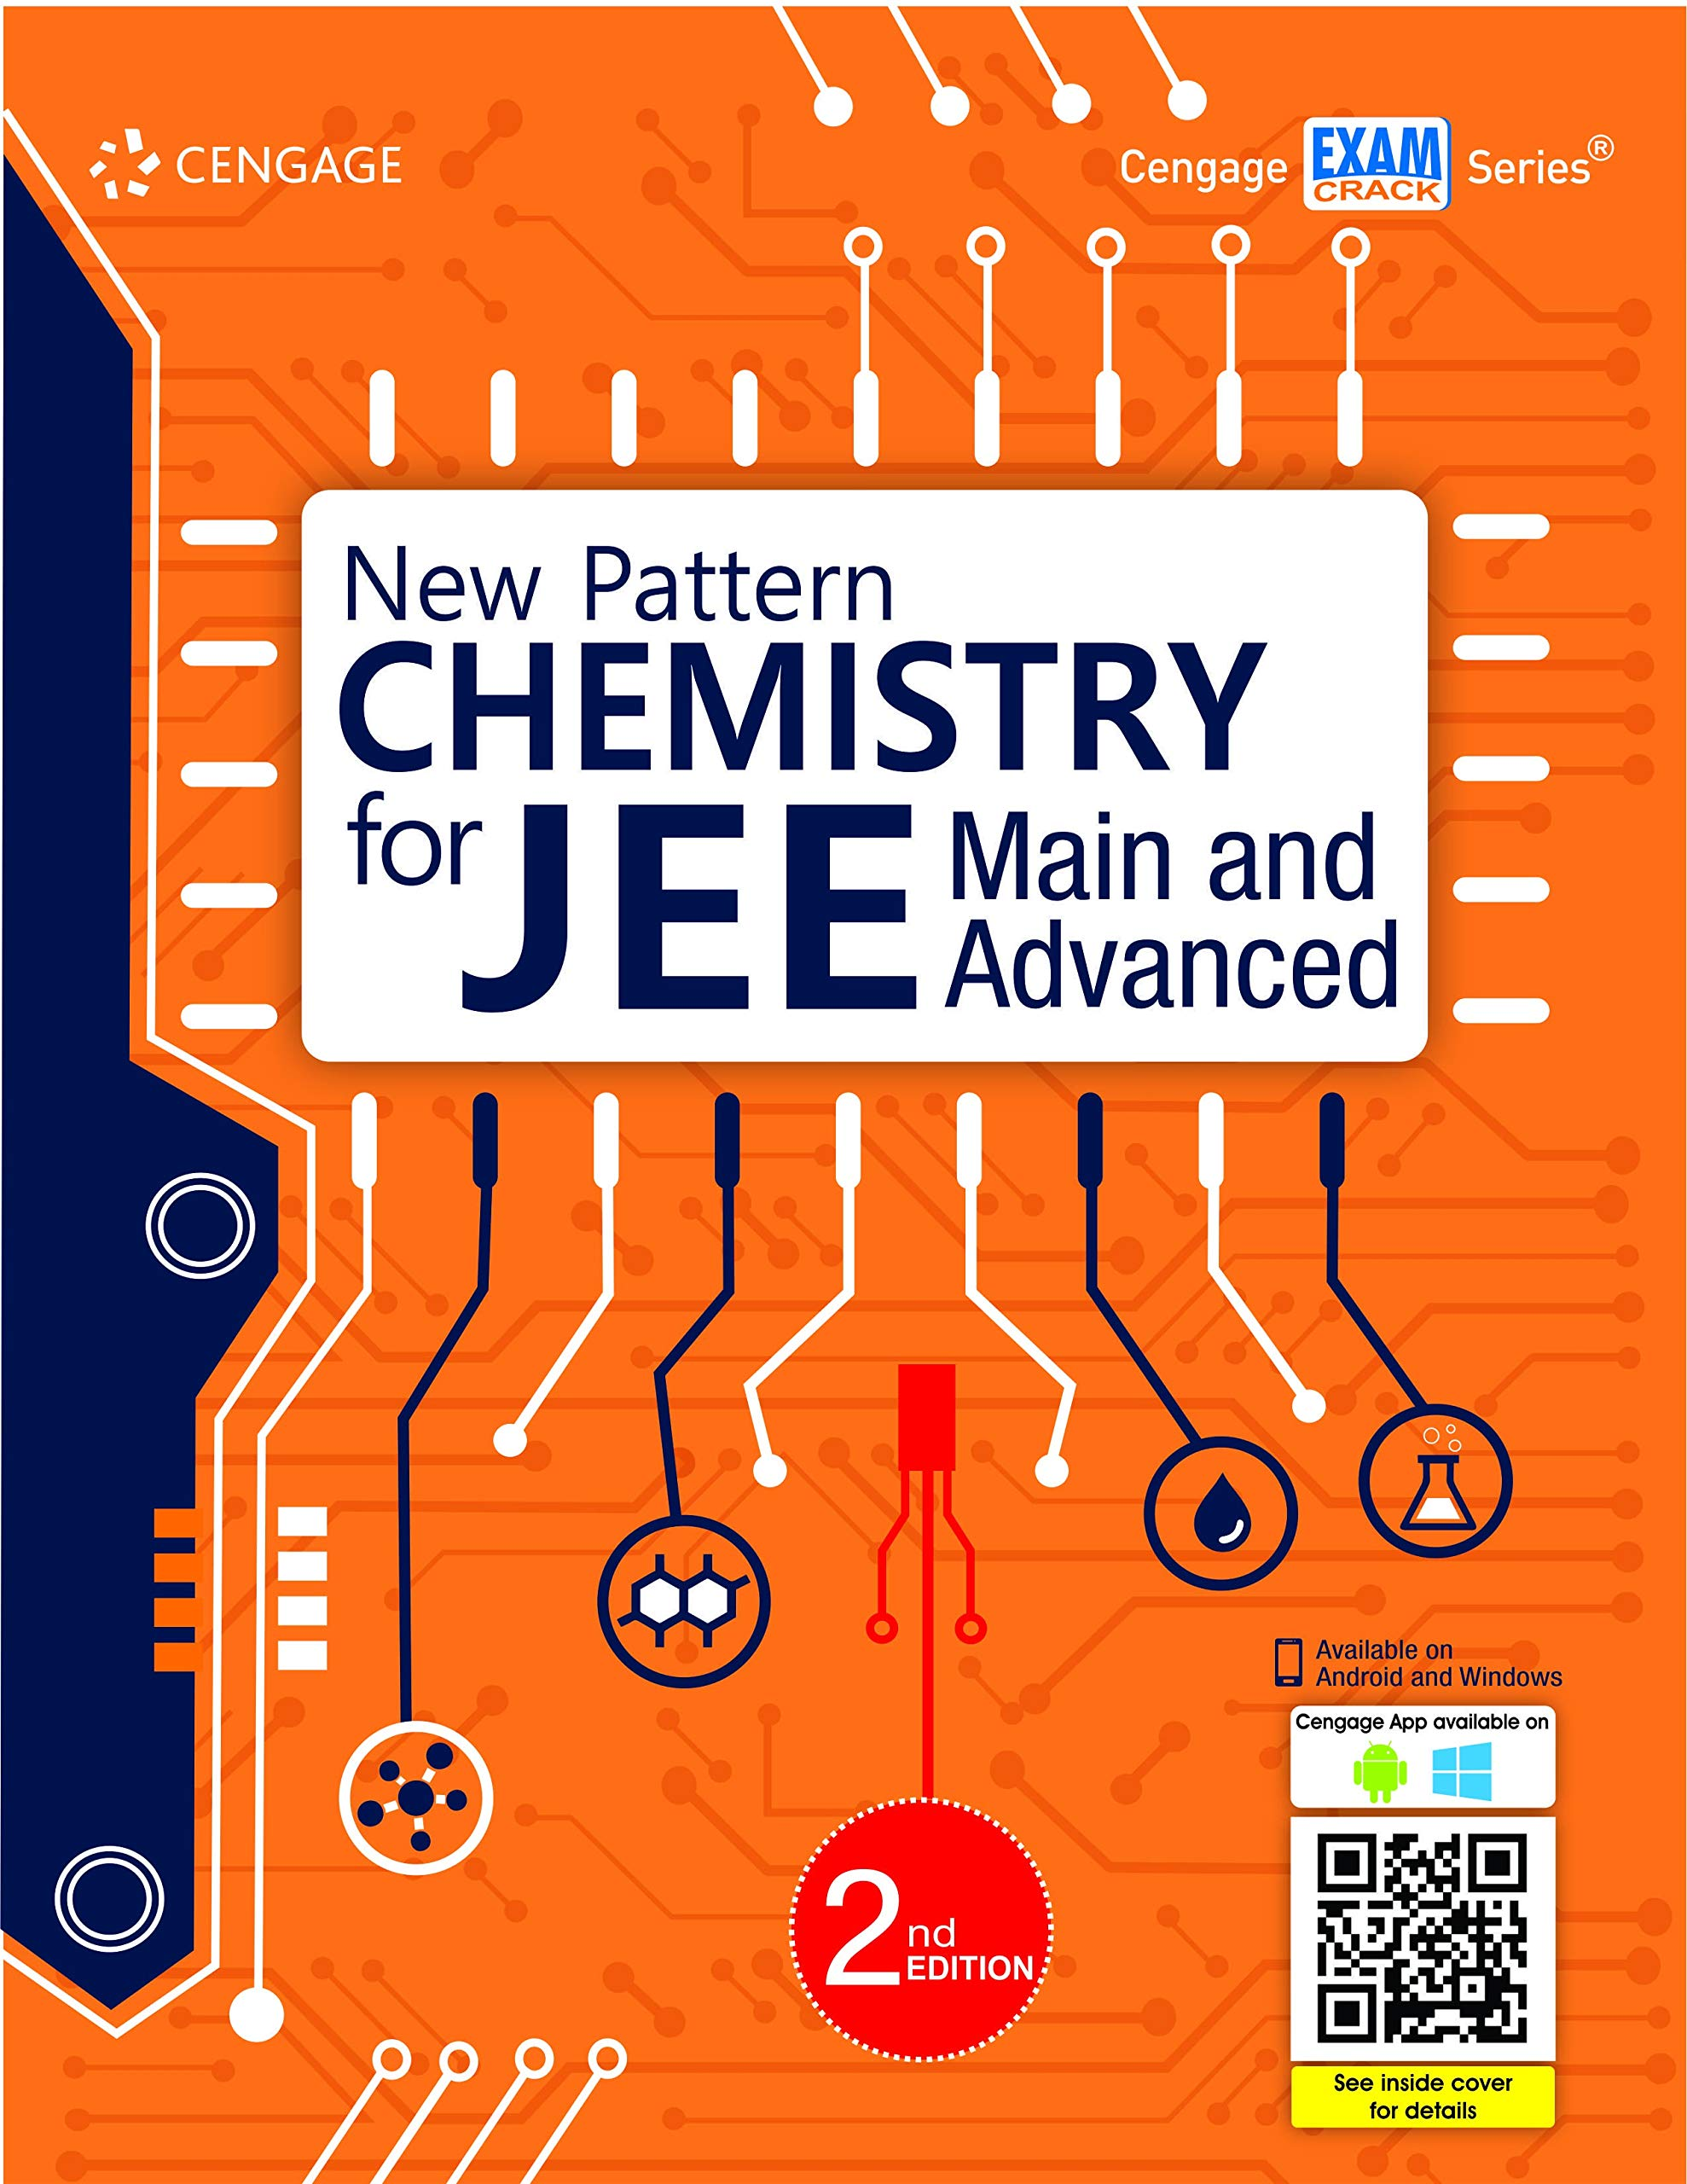 NEW PATTERN CHEMISTRY FOR JEE MAIN A